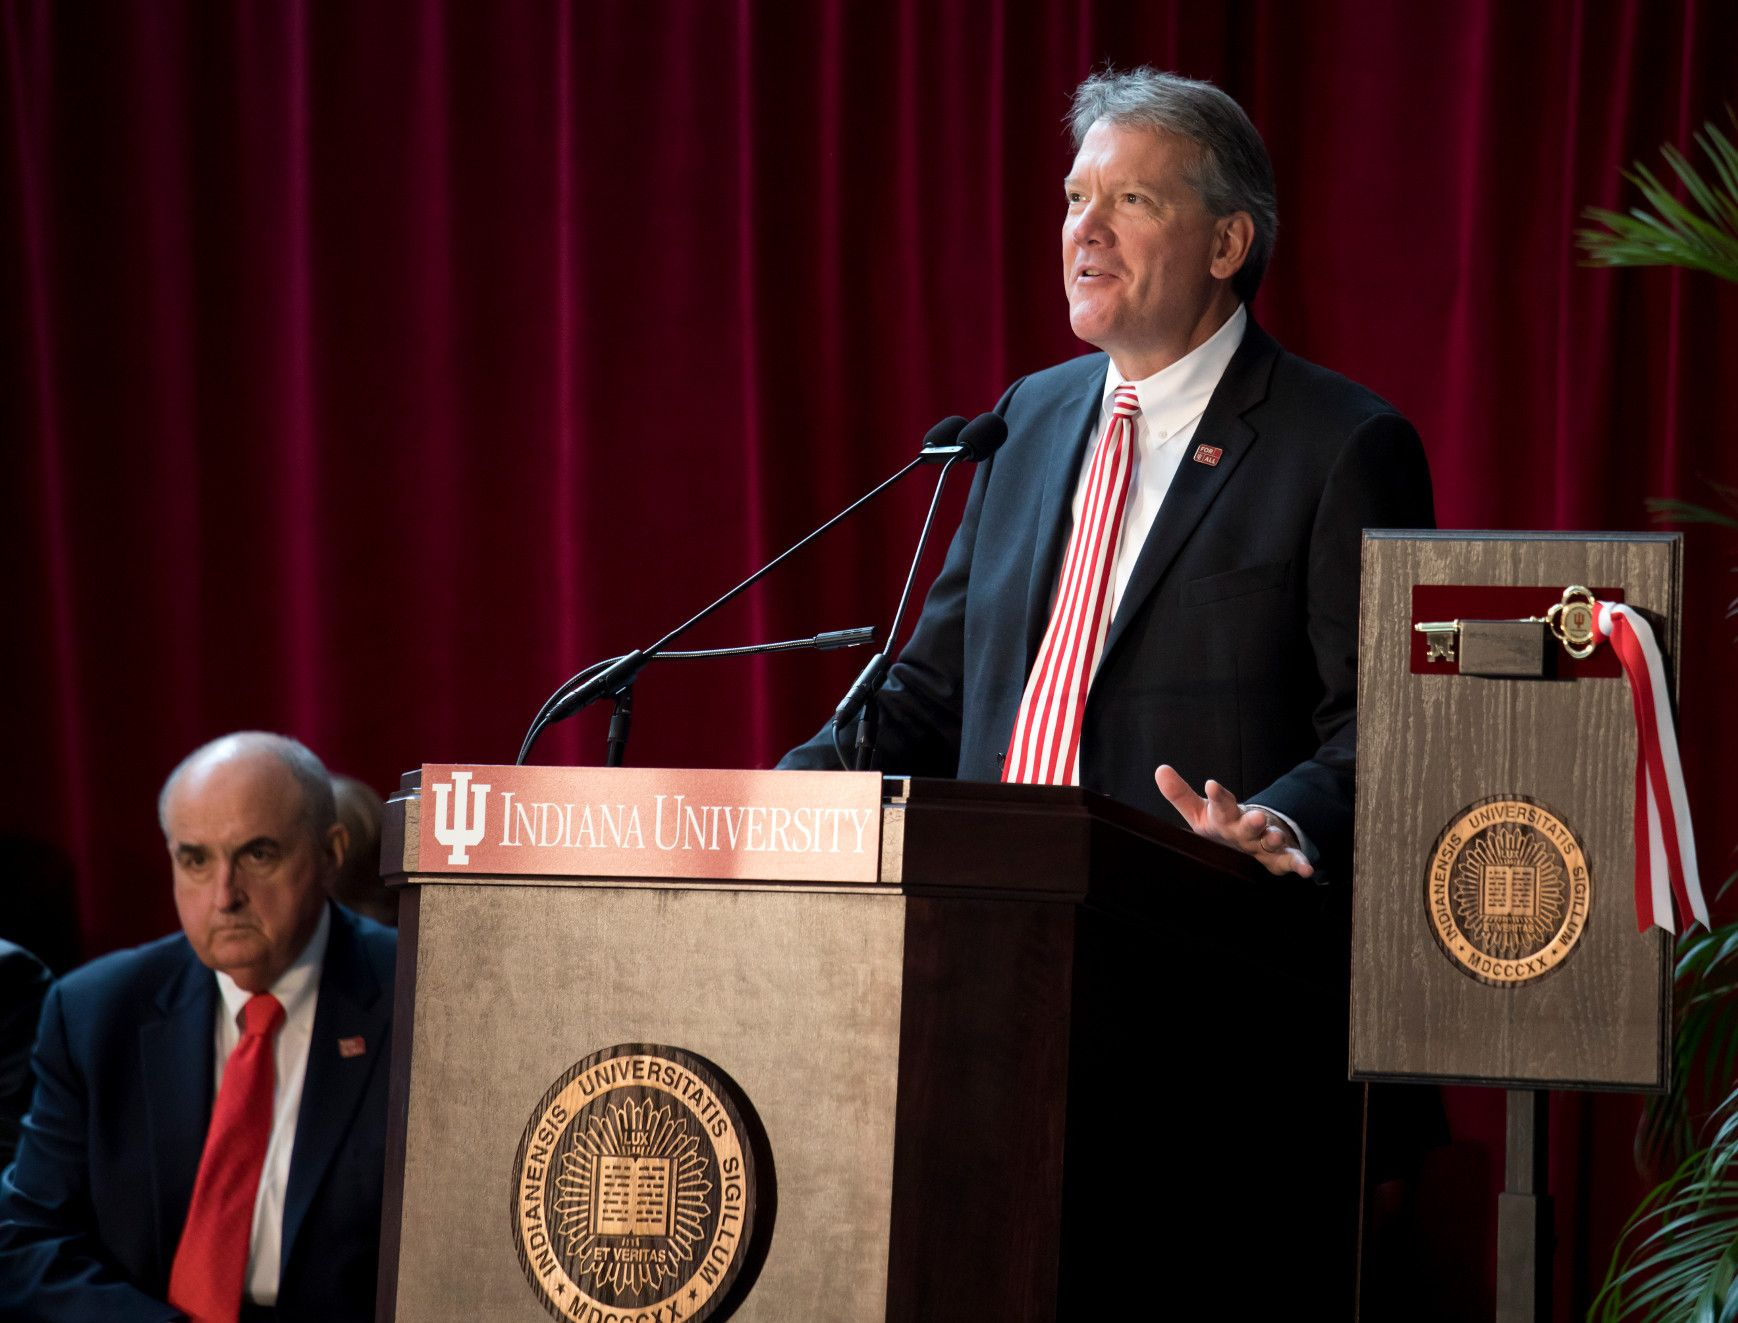 A man gives a speech at a lectern, while a seated man listens